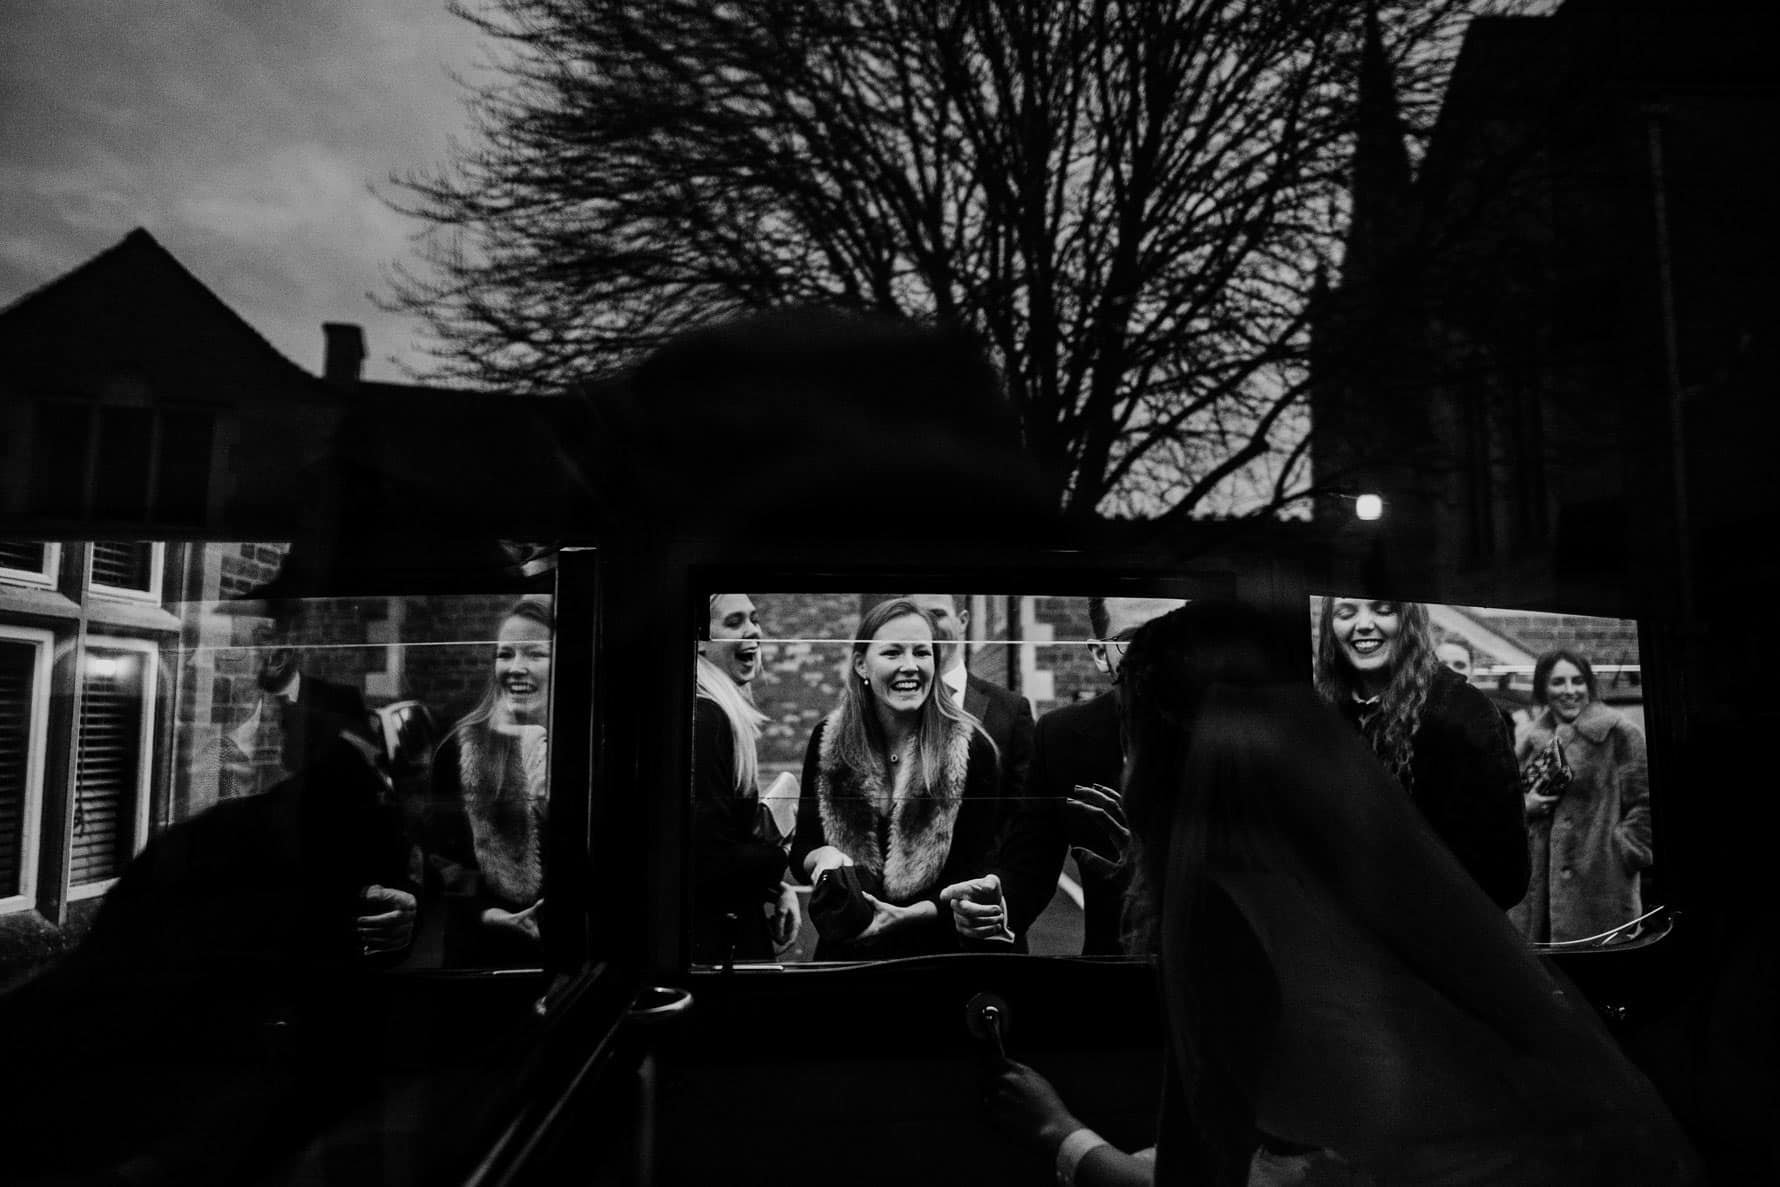 wedding guests celebrating as the bride and groom leave in their car